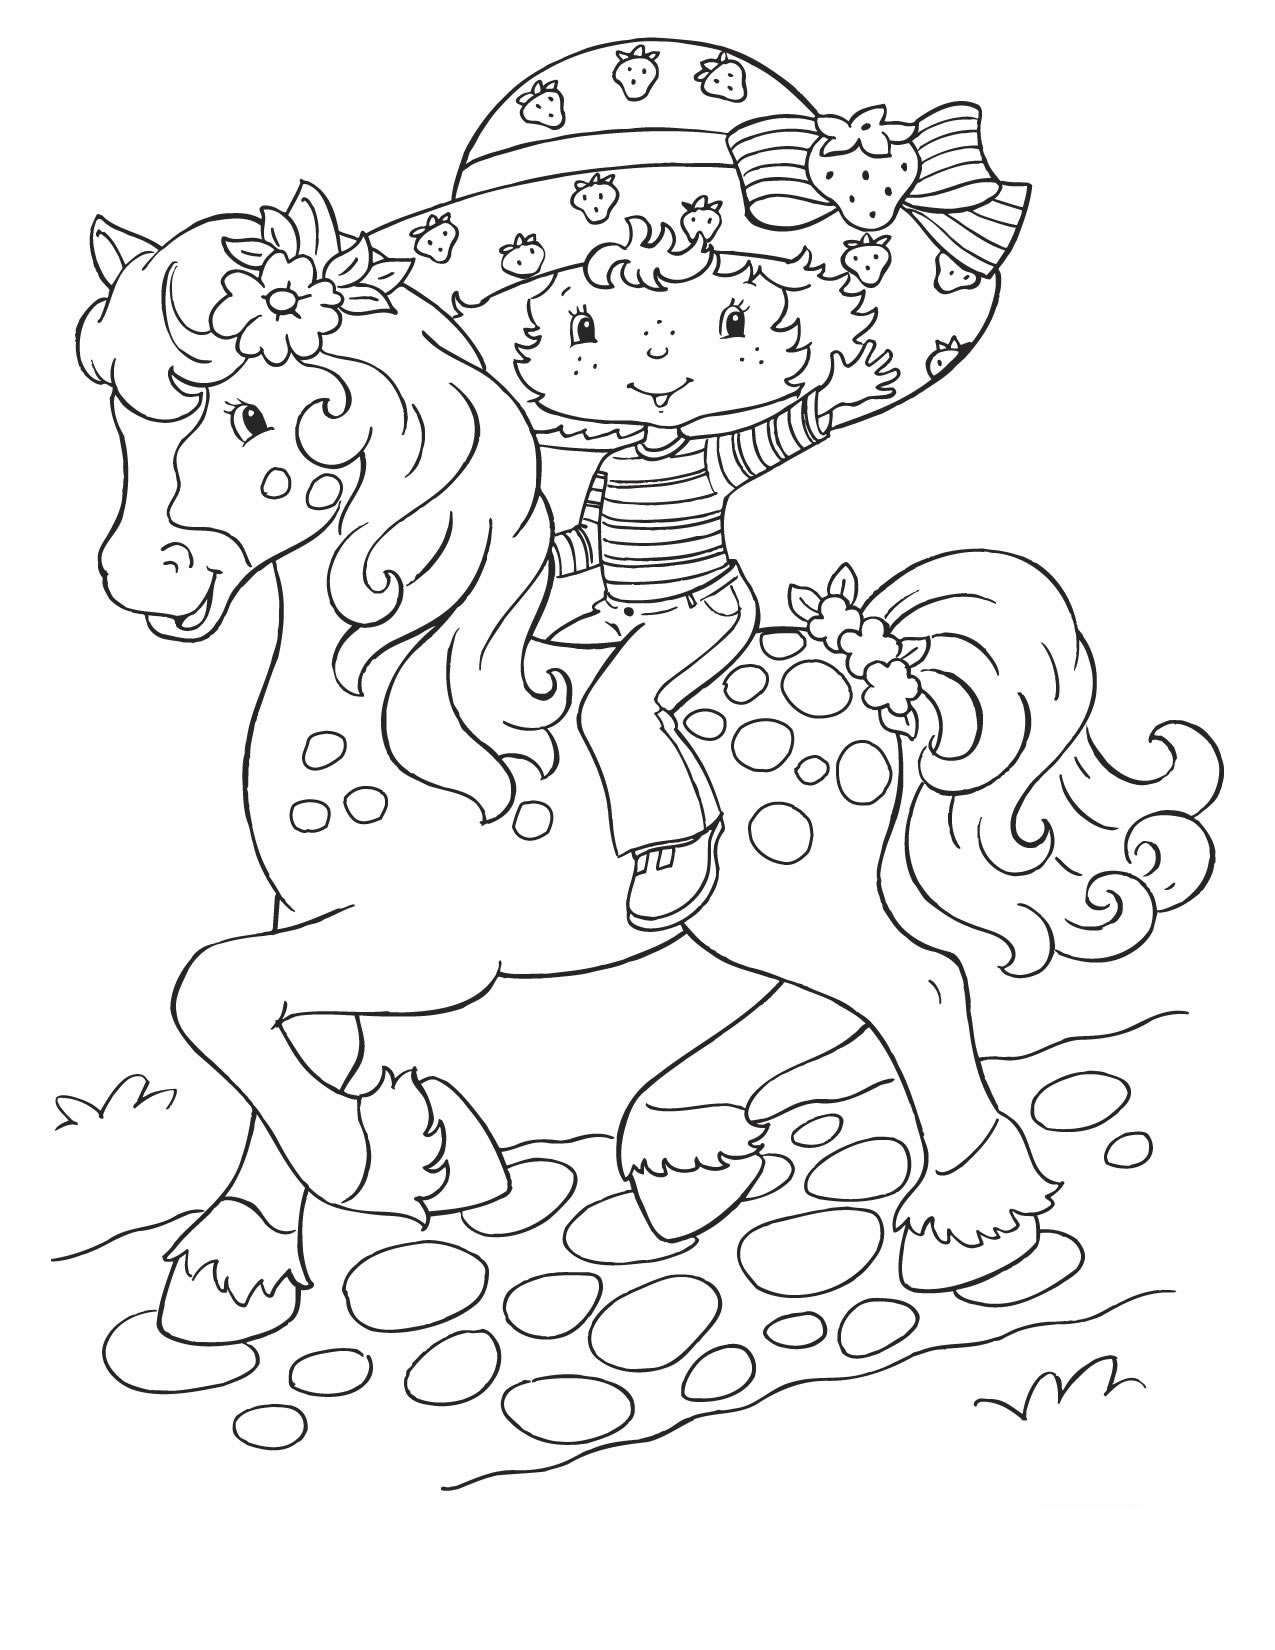 Adult Cute Printable Strawberry Shortcake Coloring Pages Gallery Images top free printable strawberry shortcake coloring pages for kids images